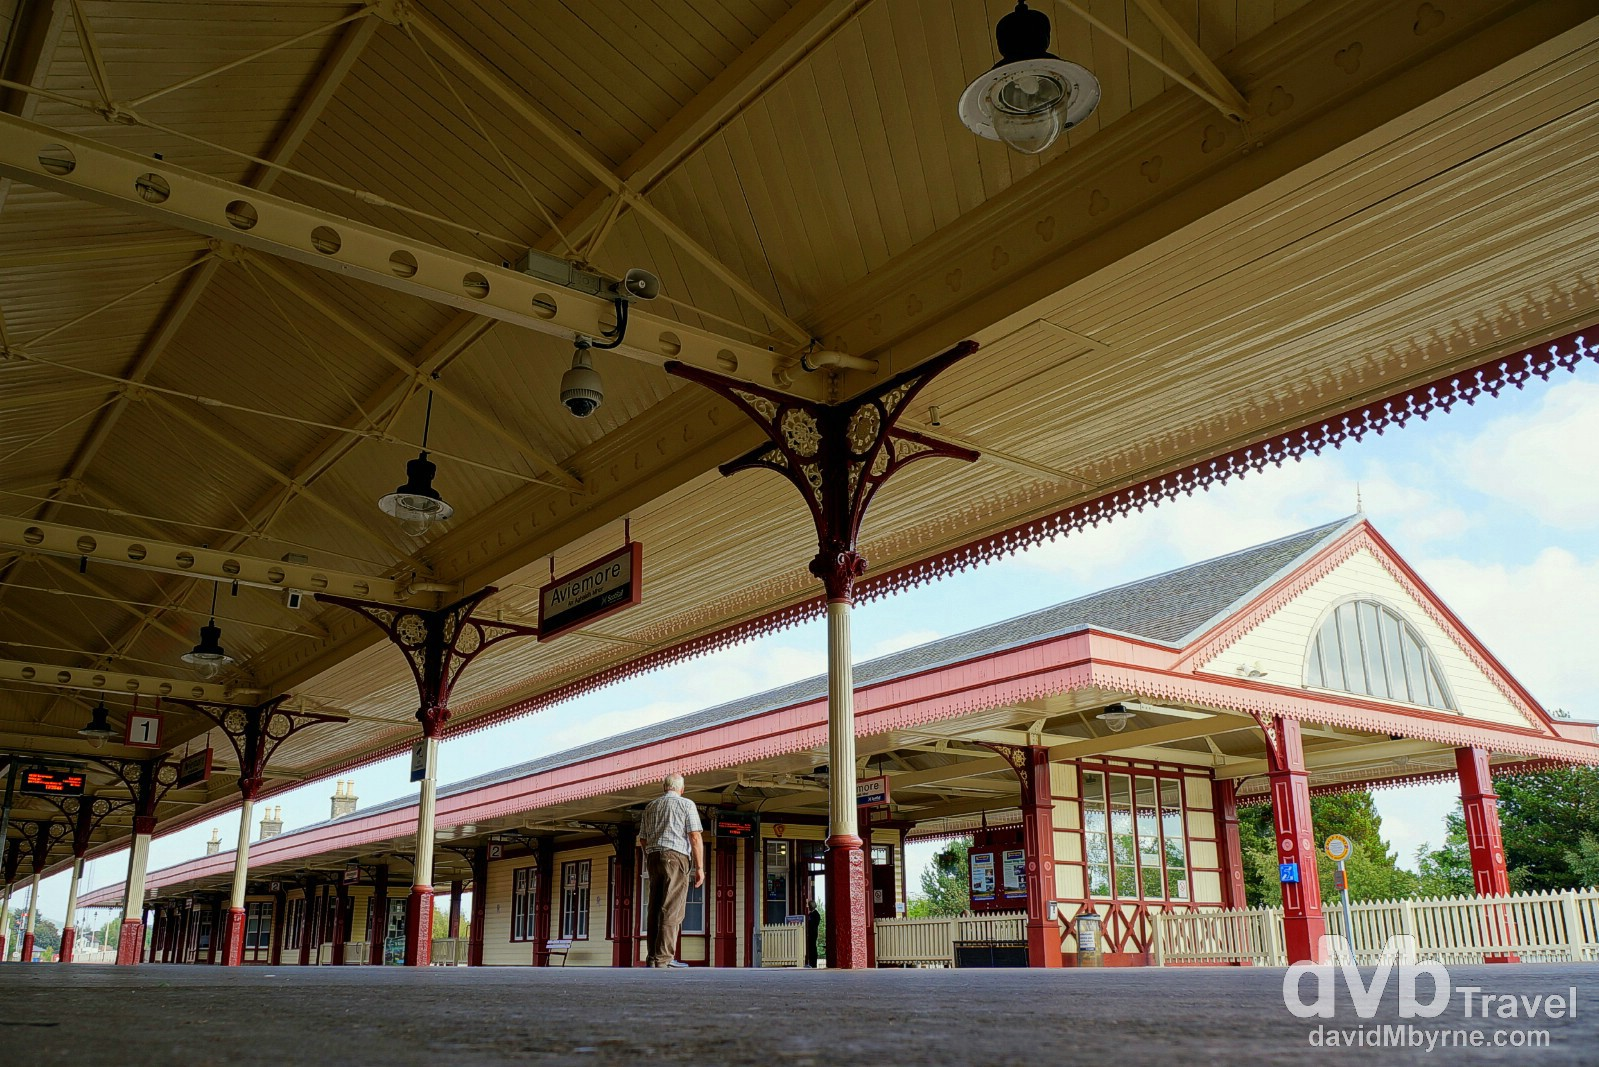 On the platform of the gorgeous Victorian era train station in Aviemore, Scotland. September 14, 2014.